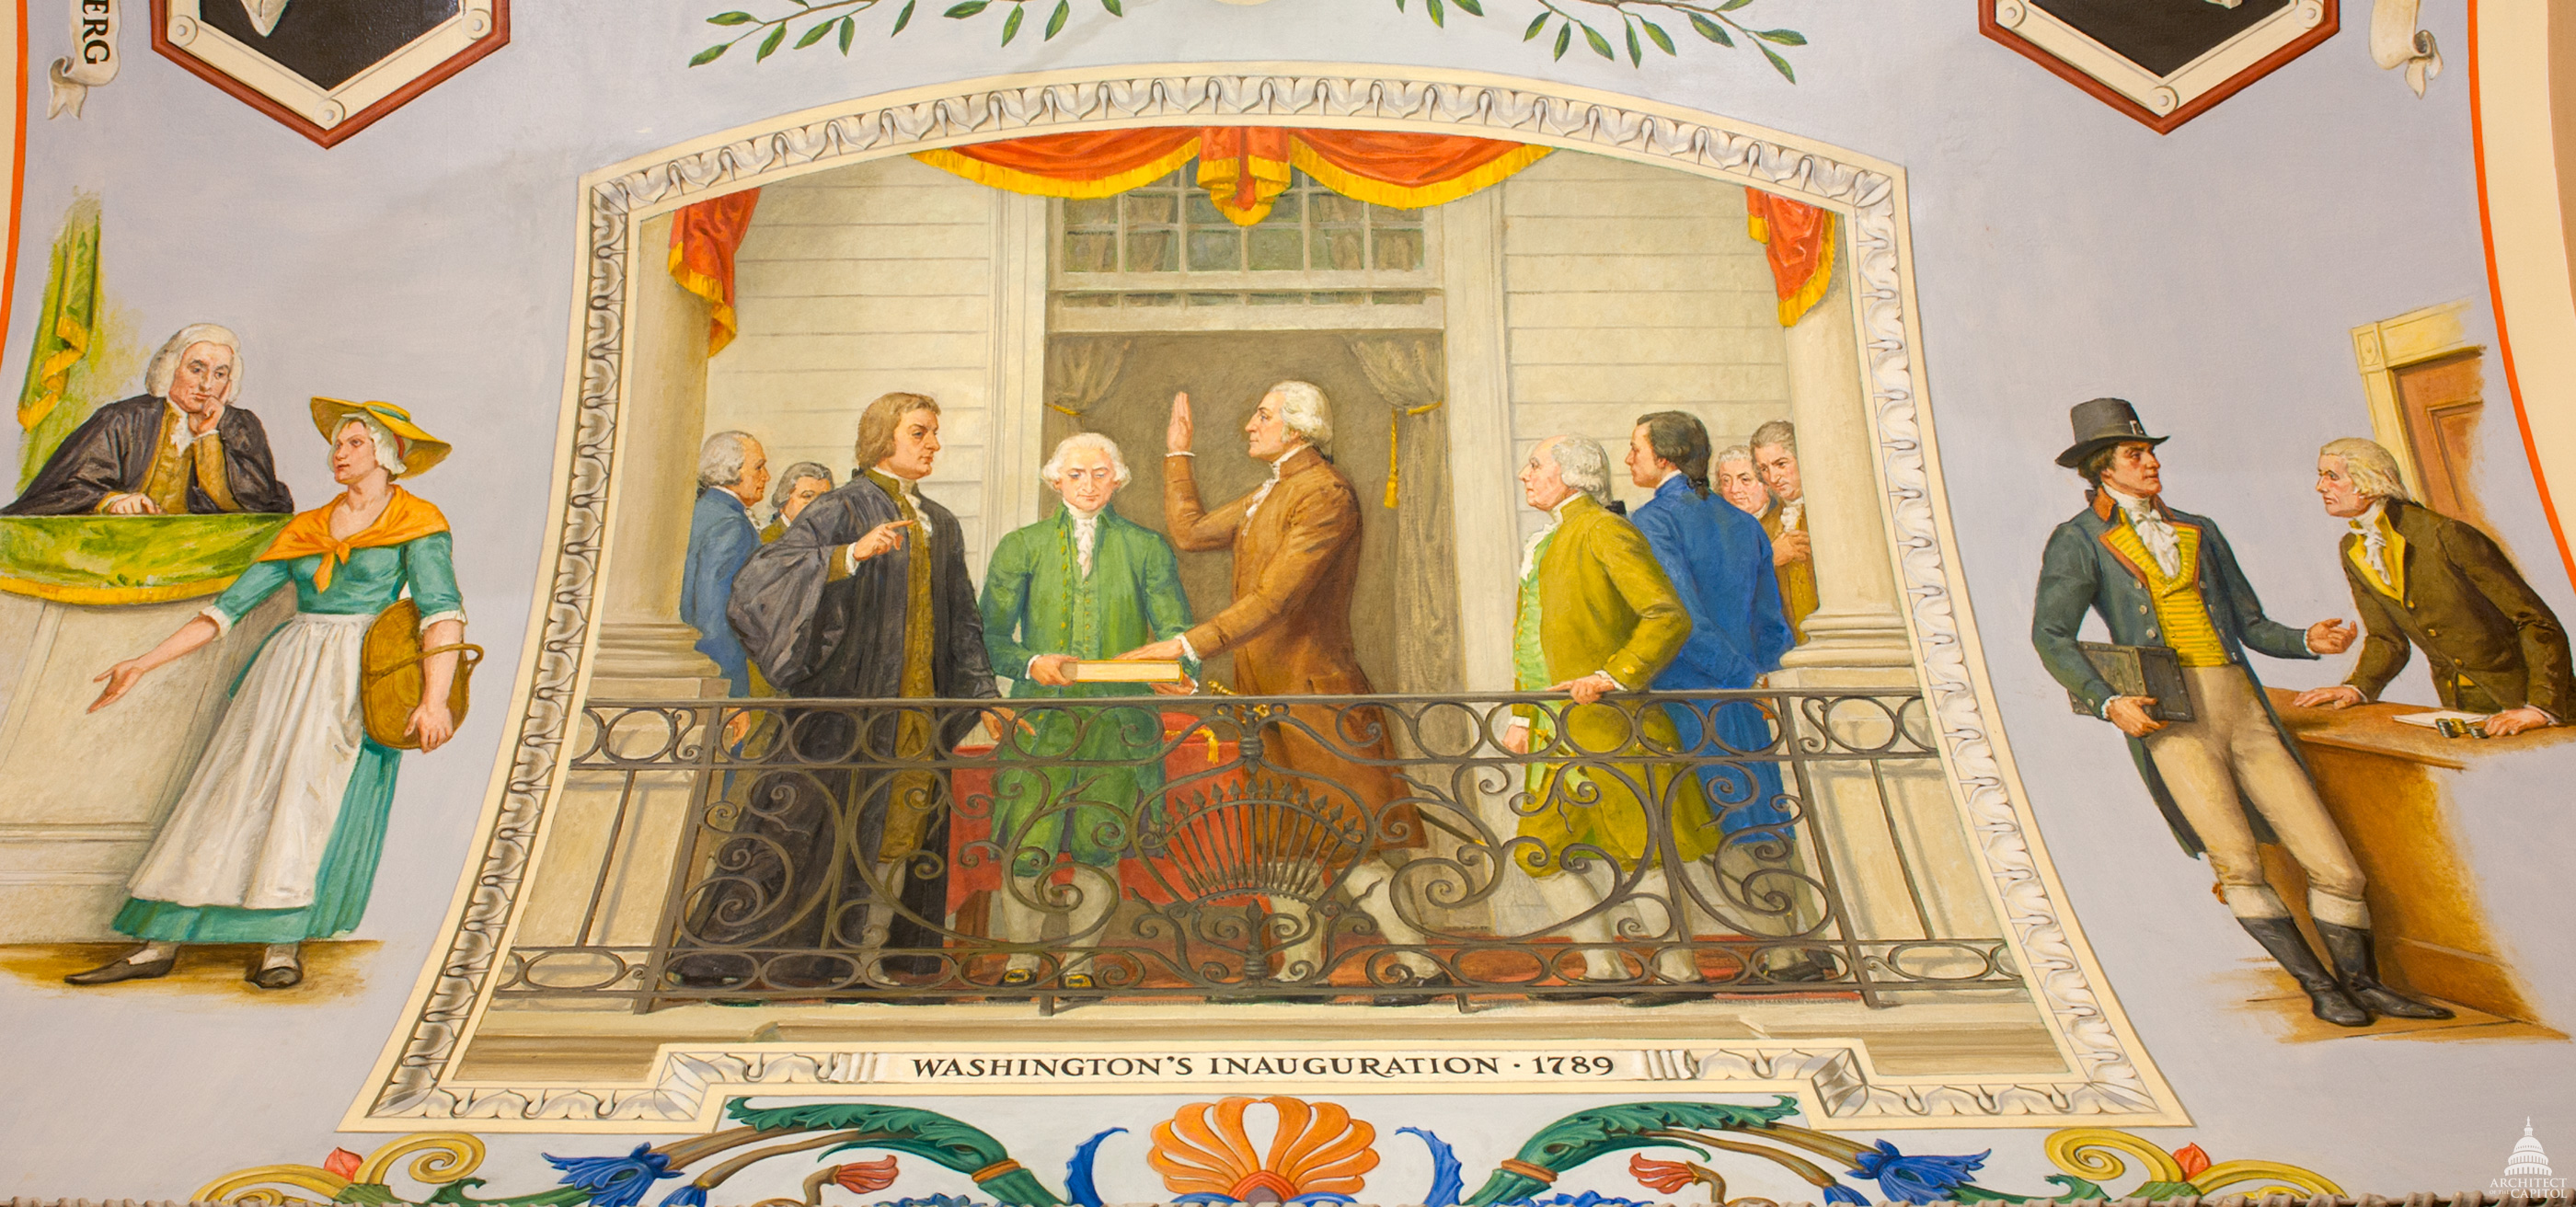 Cox Corridors mural in the U.S. Capitol depicting Washington's Inauguration, 1789.